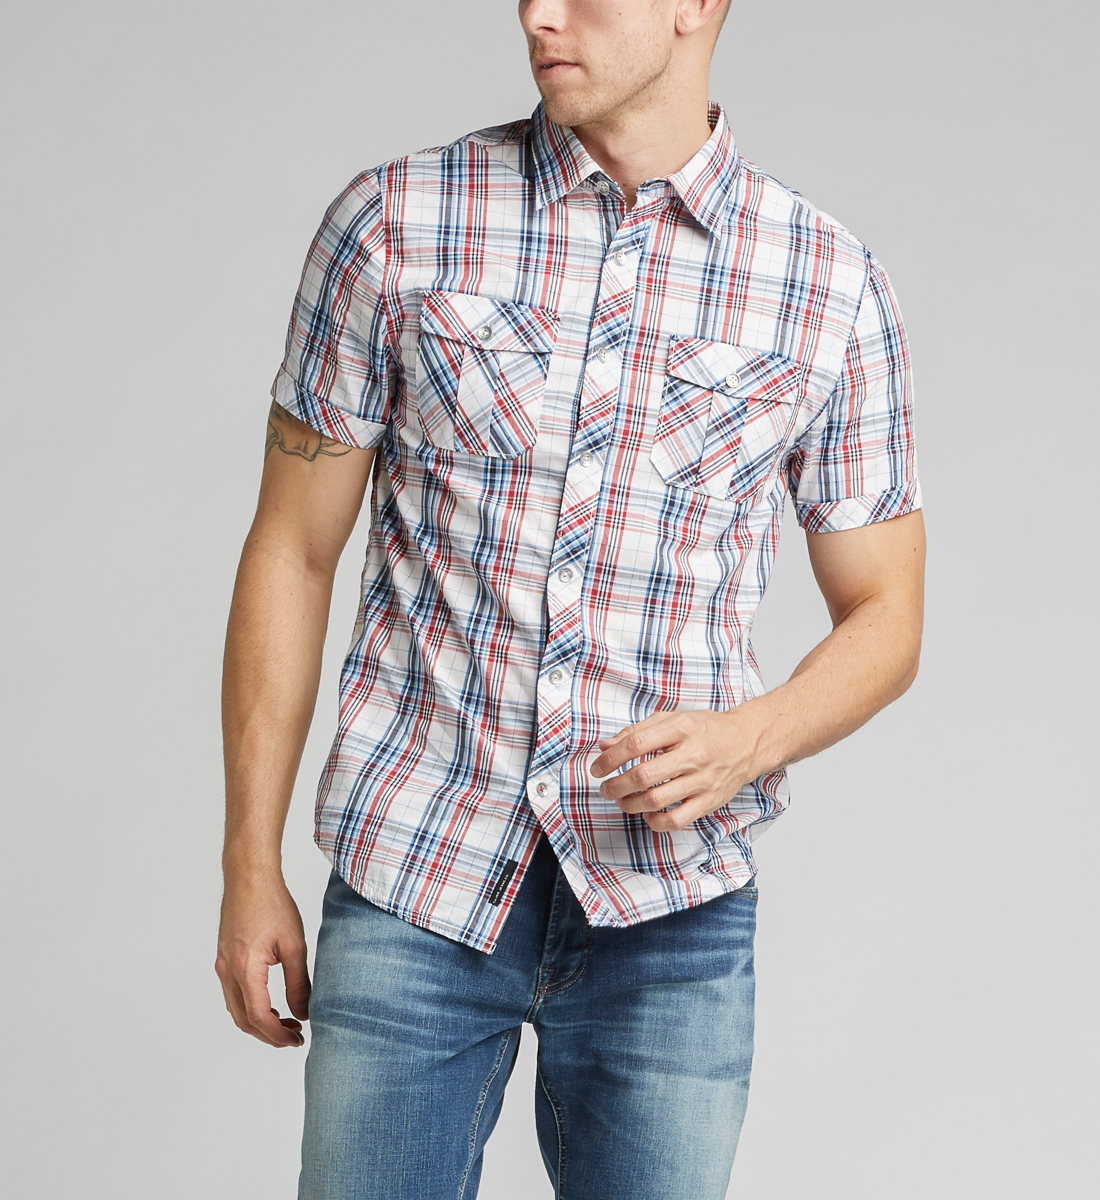 Colino Short-Sleeve Classic Shirt, , hi-res